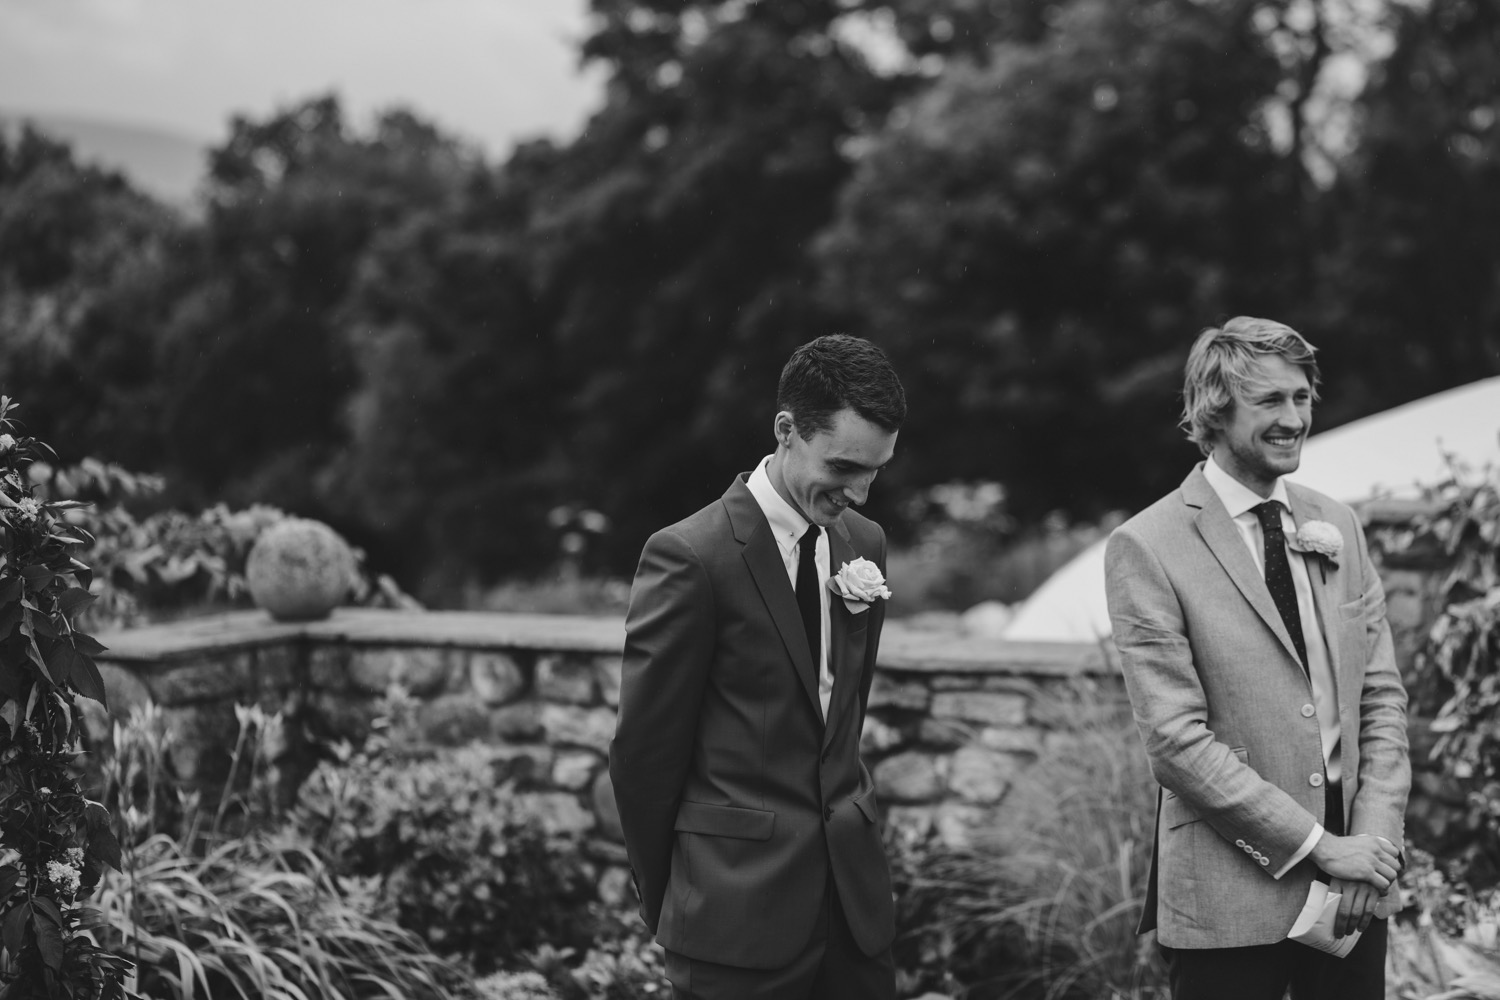 lancashire-wedding-photorapher-30.JPG